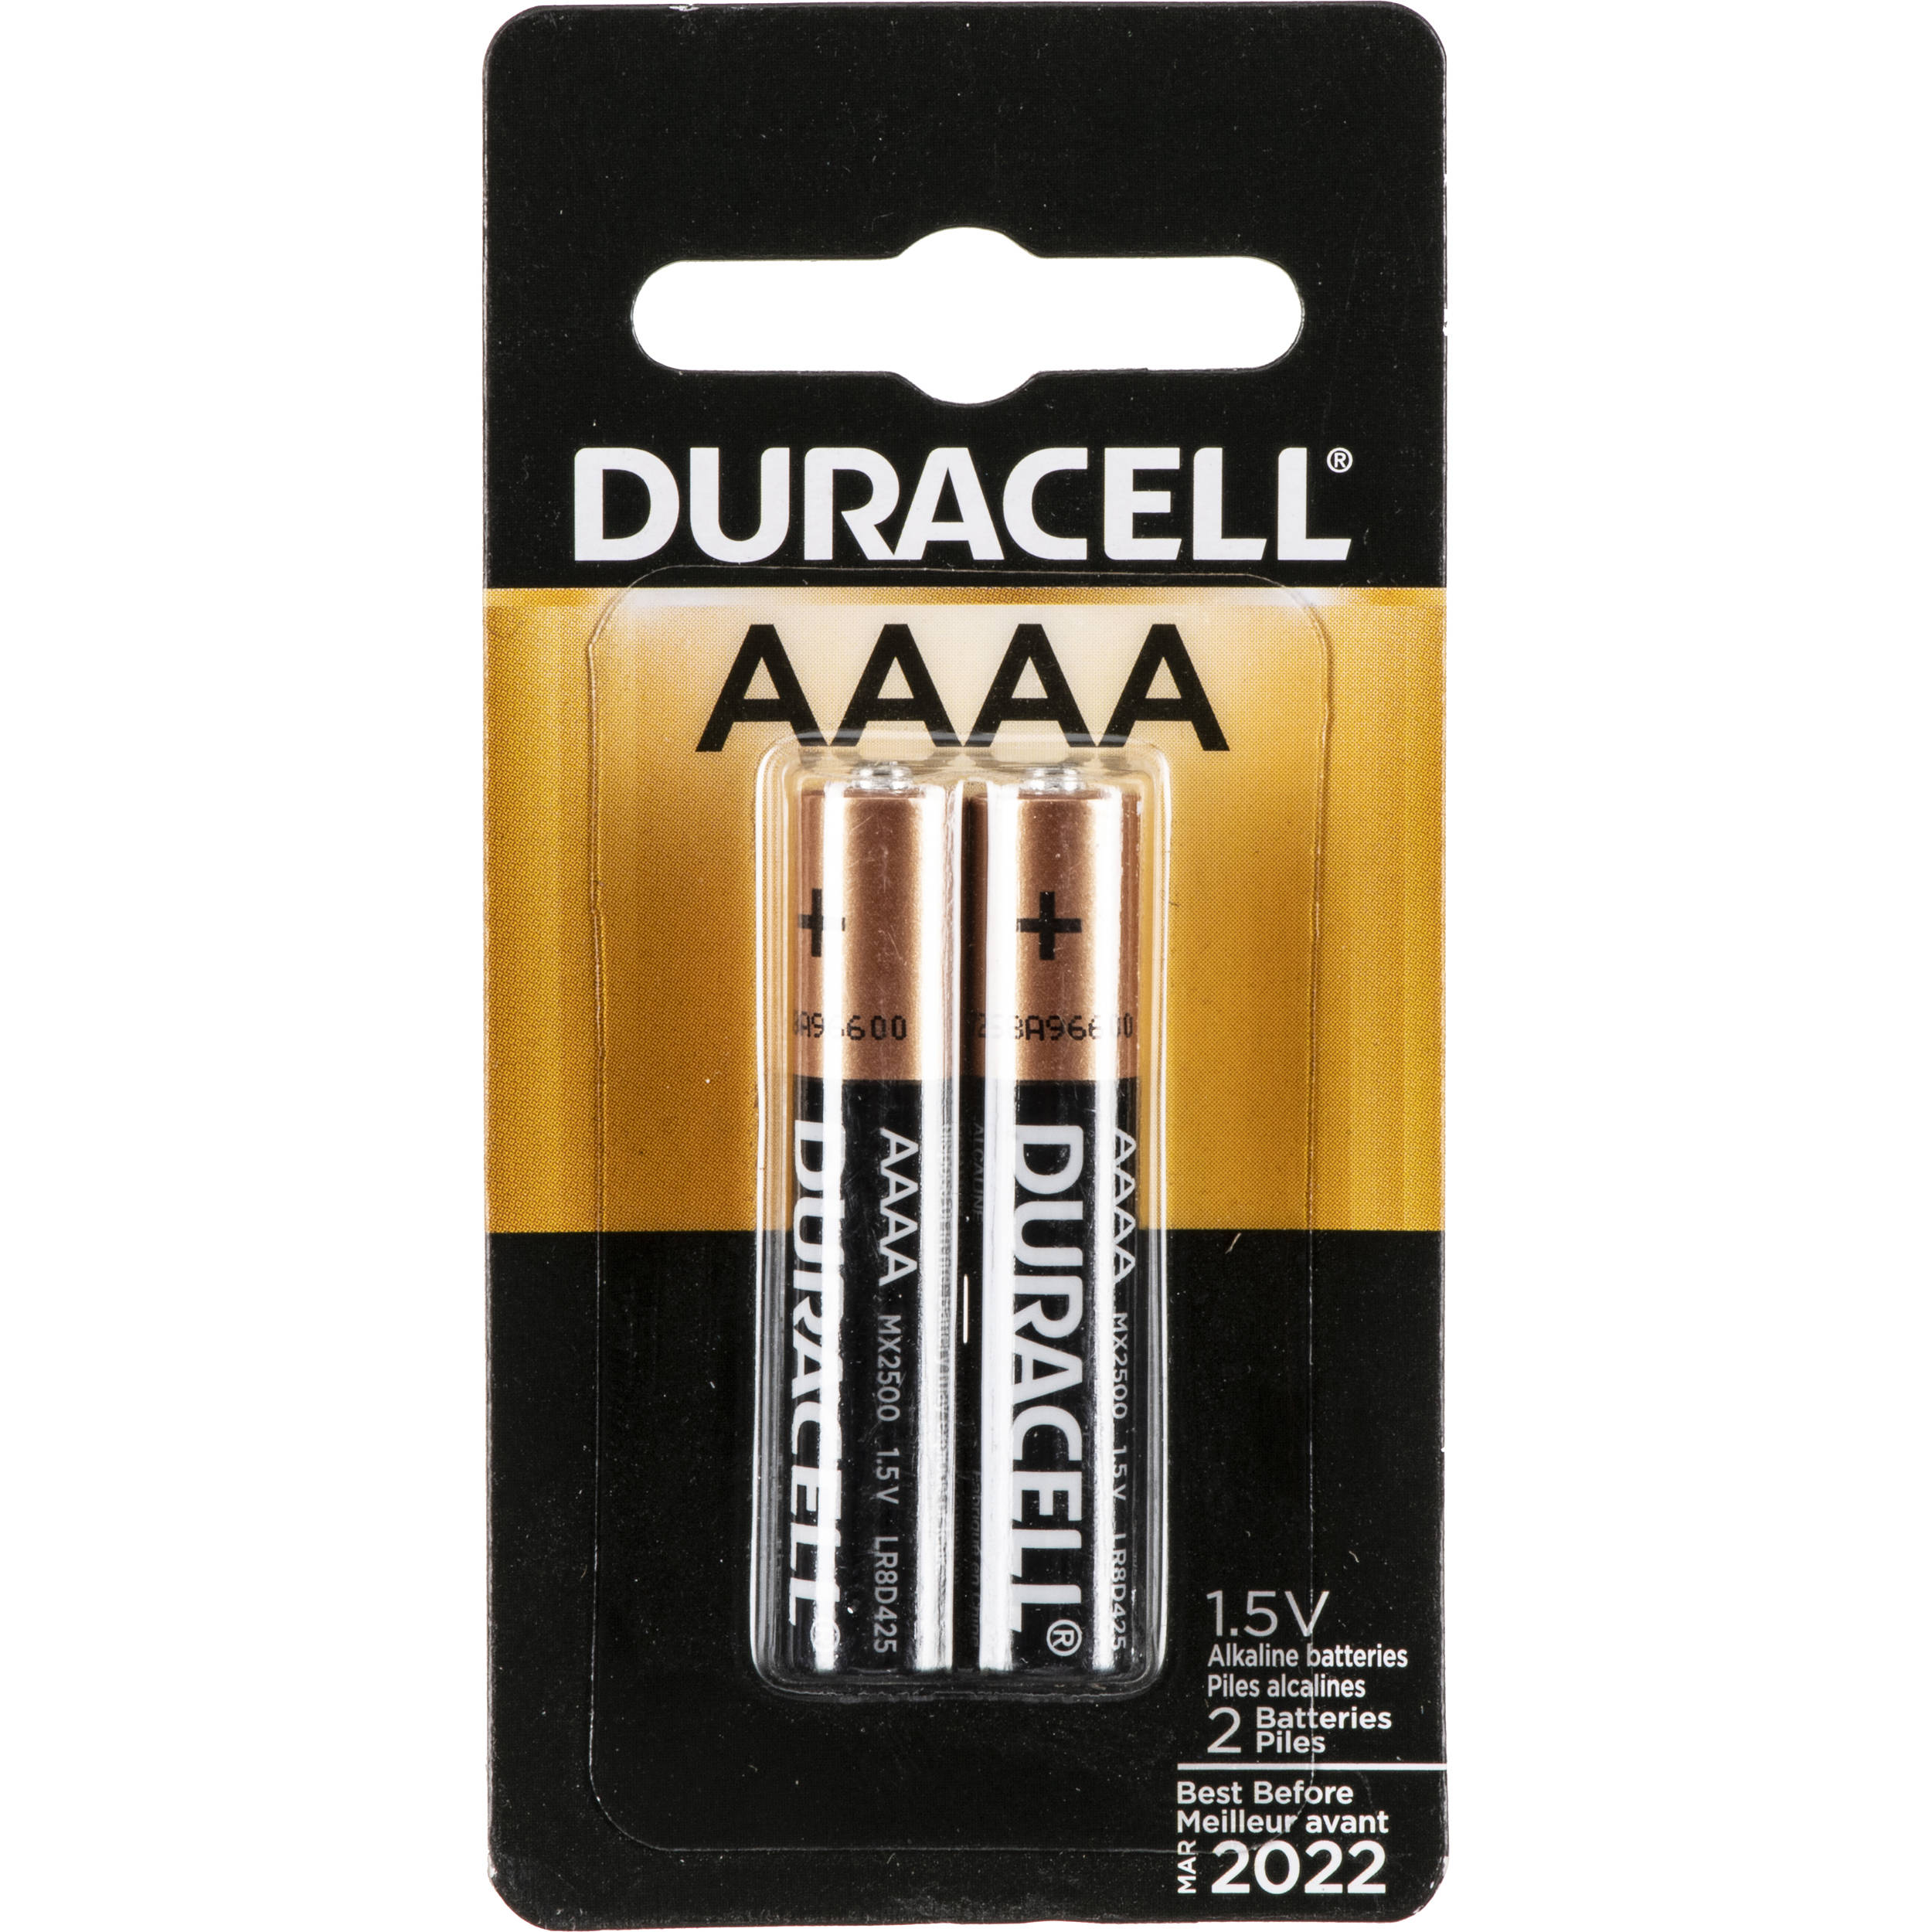 Buy batteries in bulk including Duracell Procell, Sony and BB Battery sealed lead acid batteries and save. Large variety of battery chargers and rechargeable batteries.